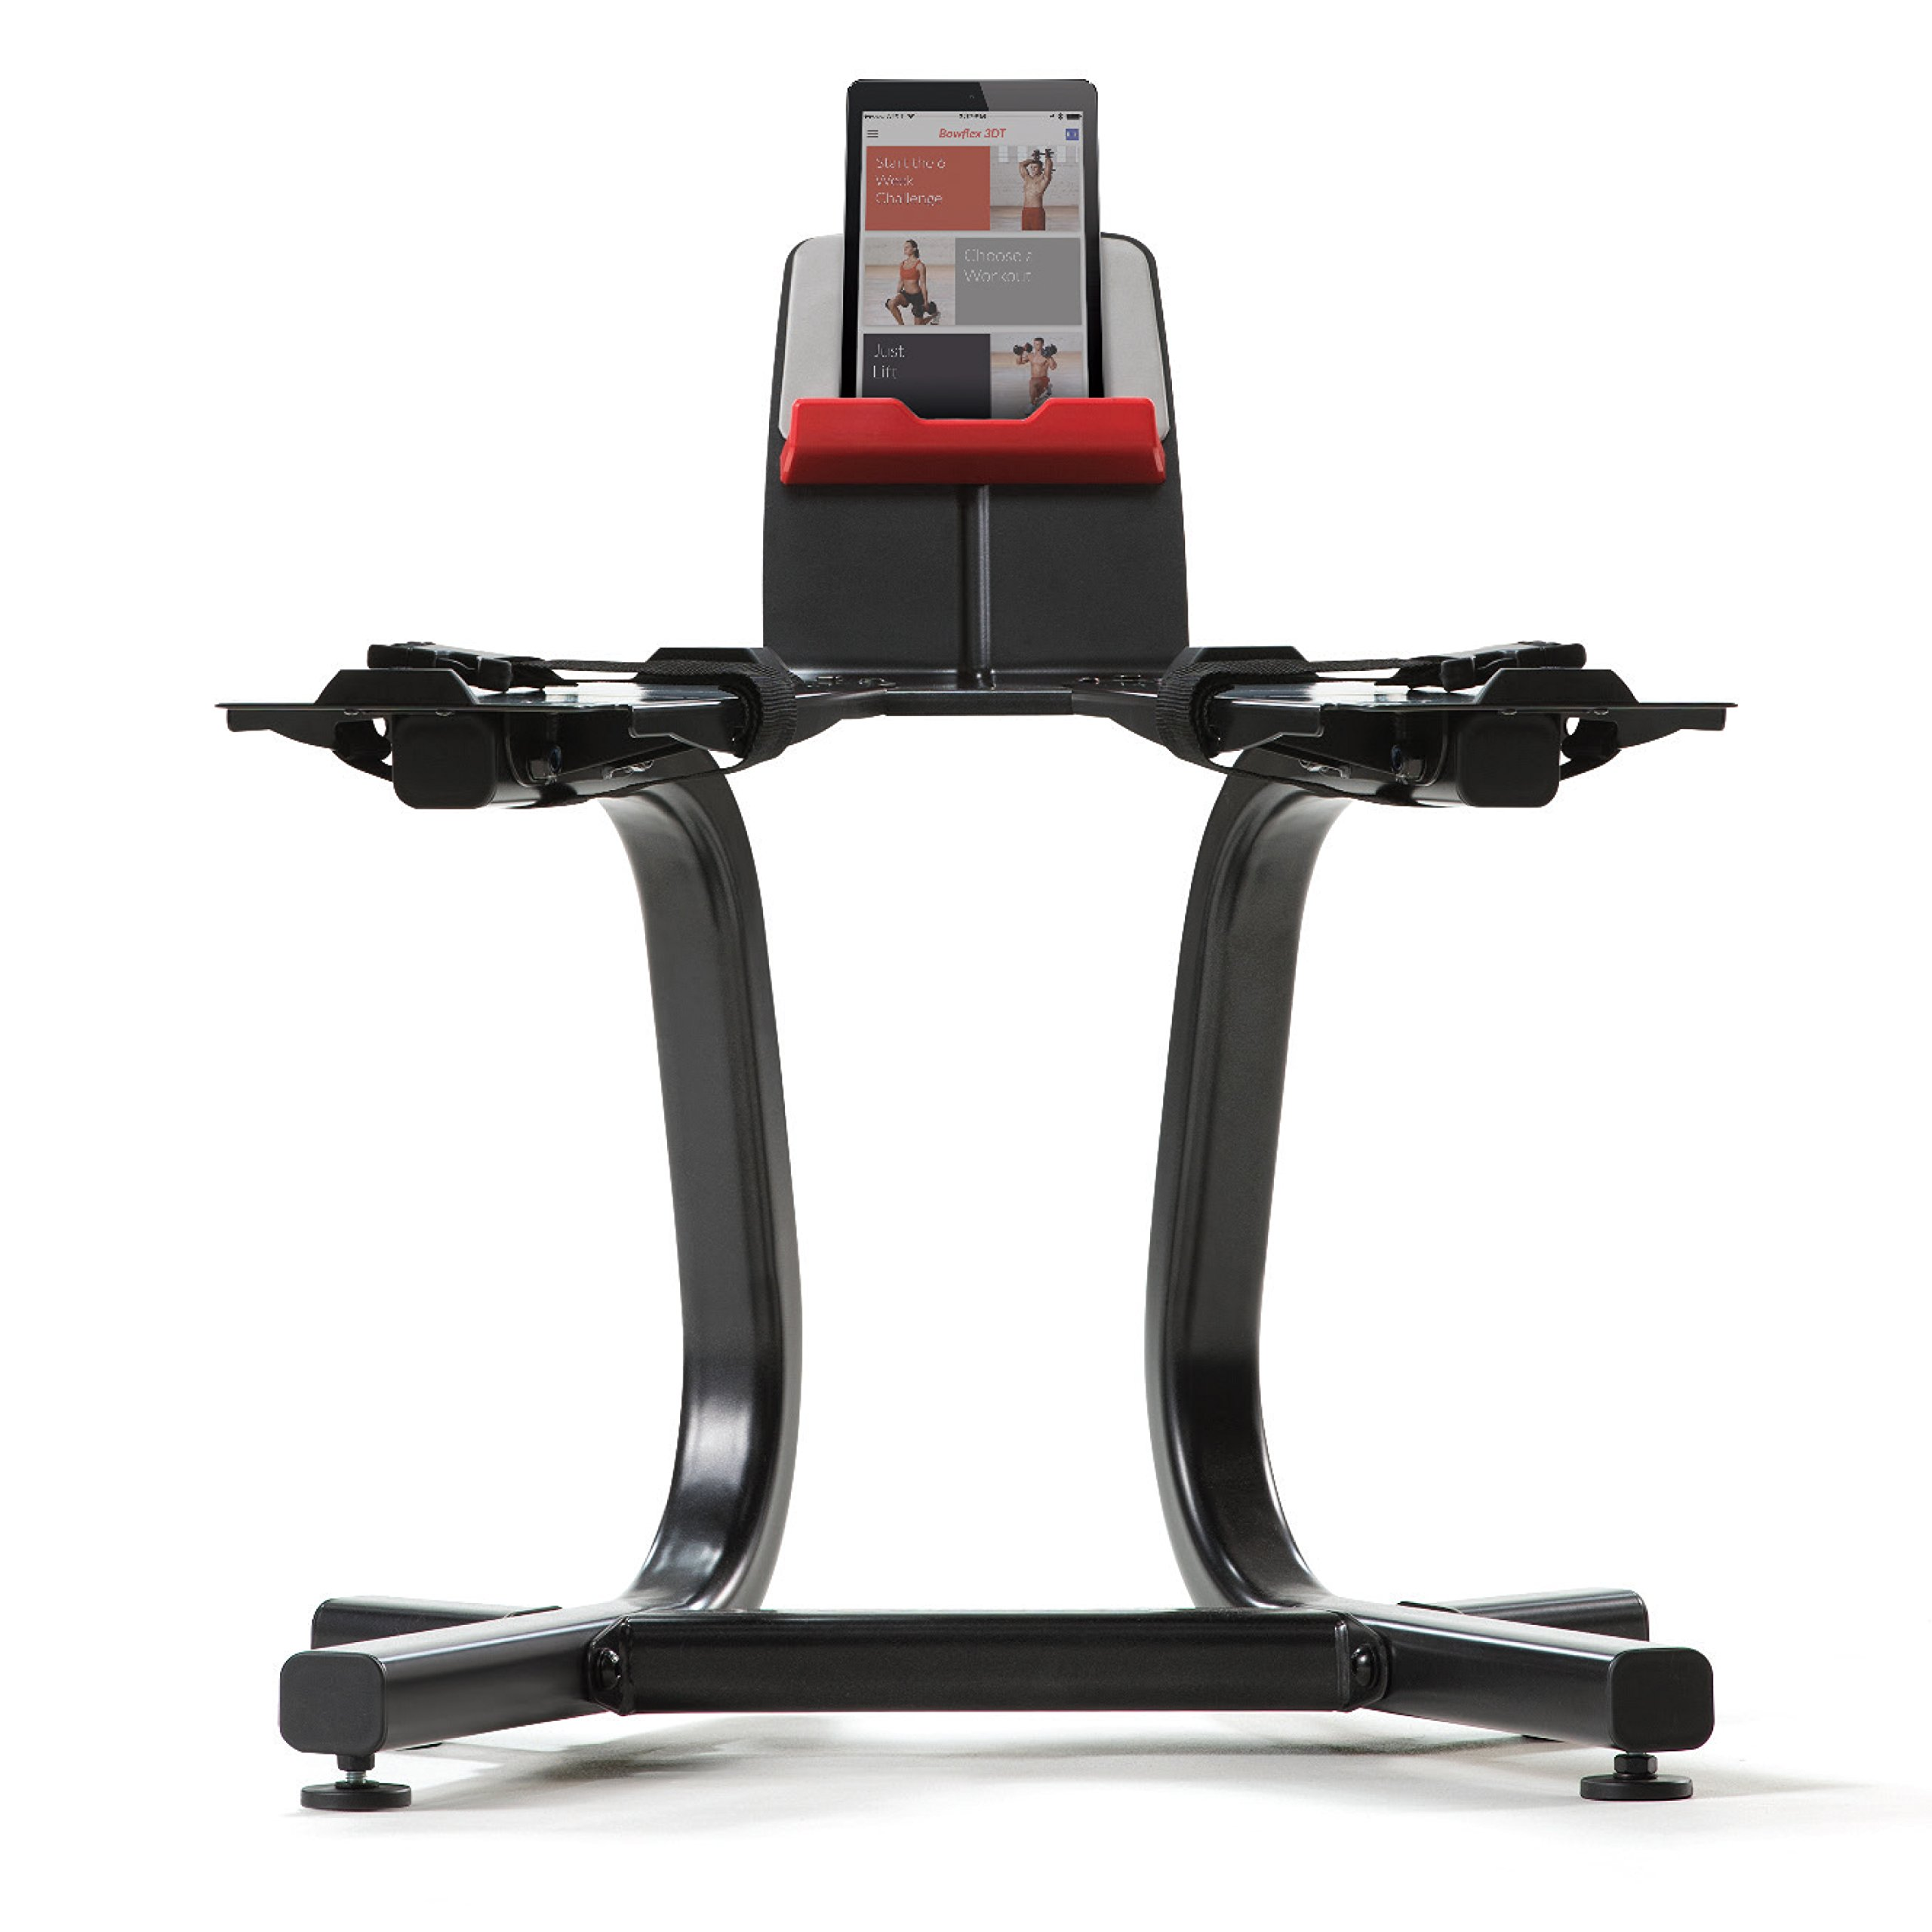 Adjustable Weights Bowflex: Bowflex Stand For 552 And 1090 Selecttech Adjustable